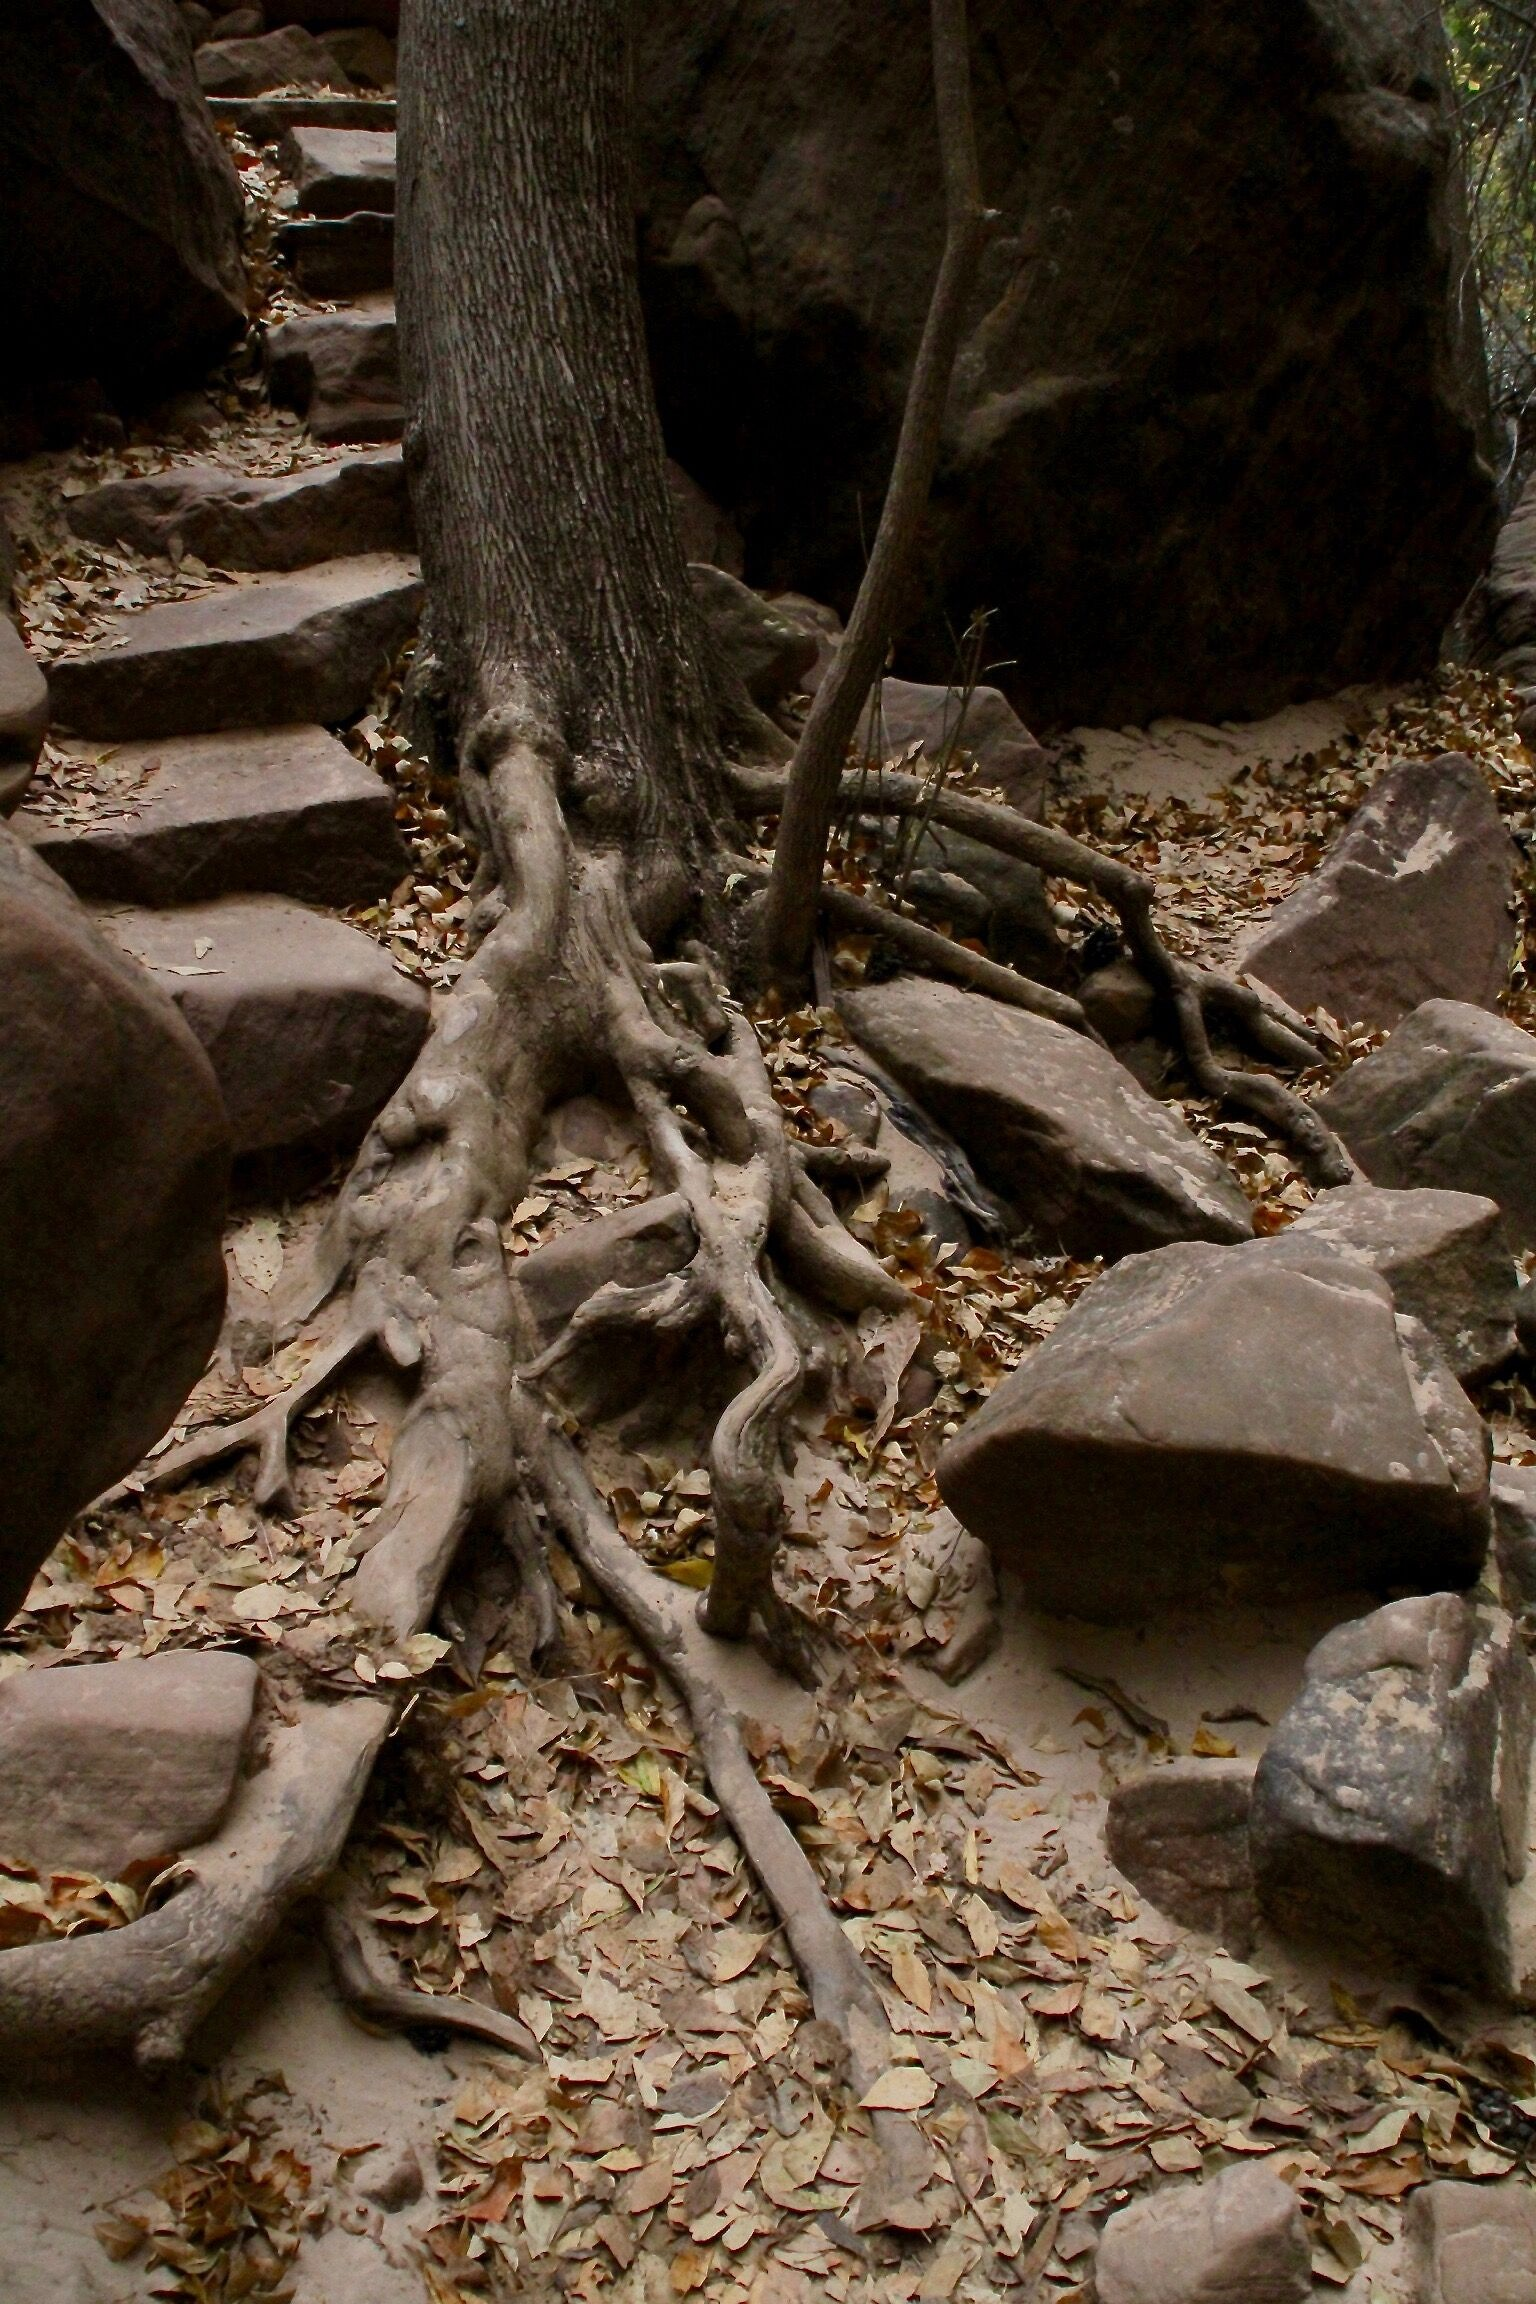 """Zion Stairs"" by Rob Katz is the winning image for the Film Days poster image contest."